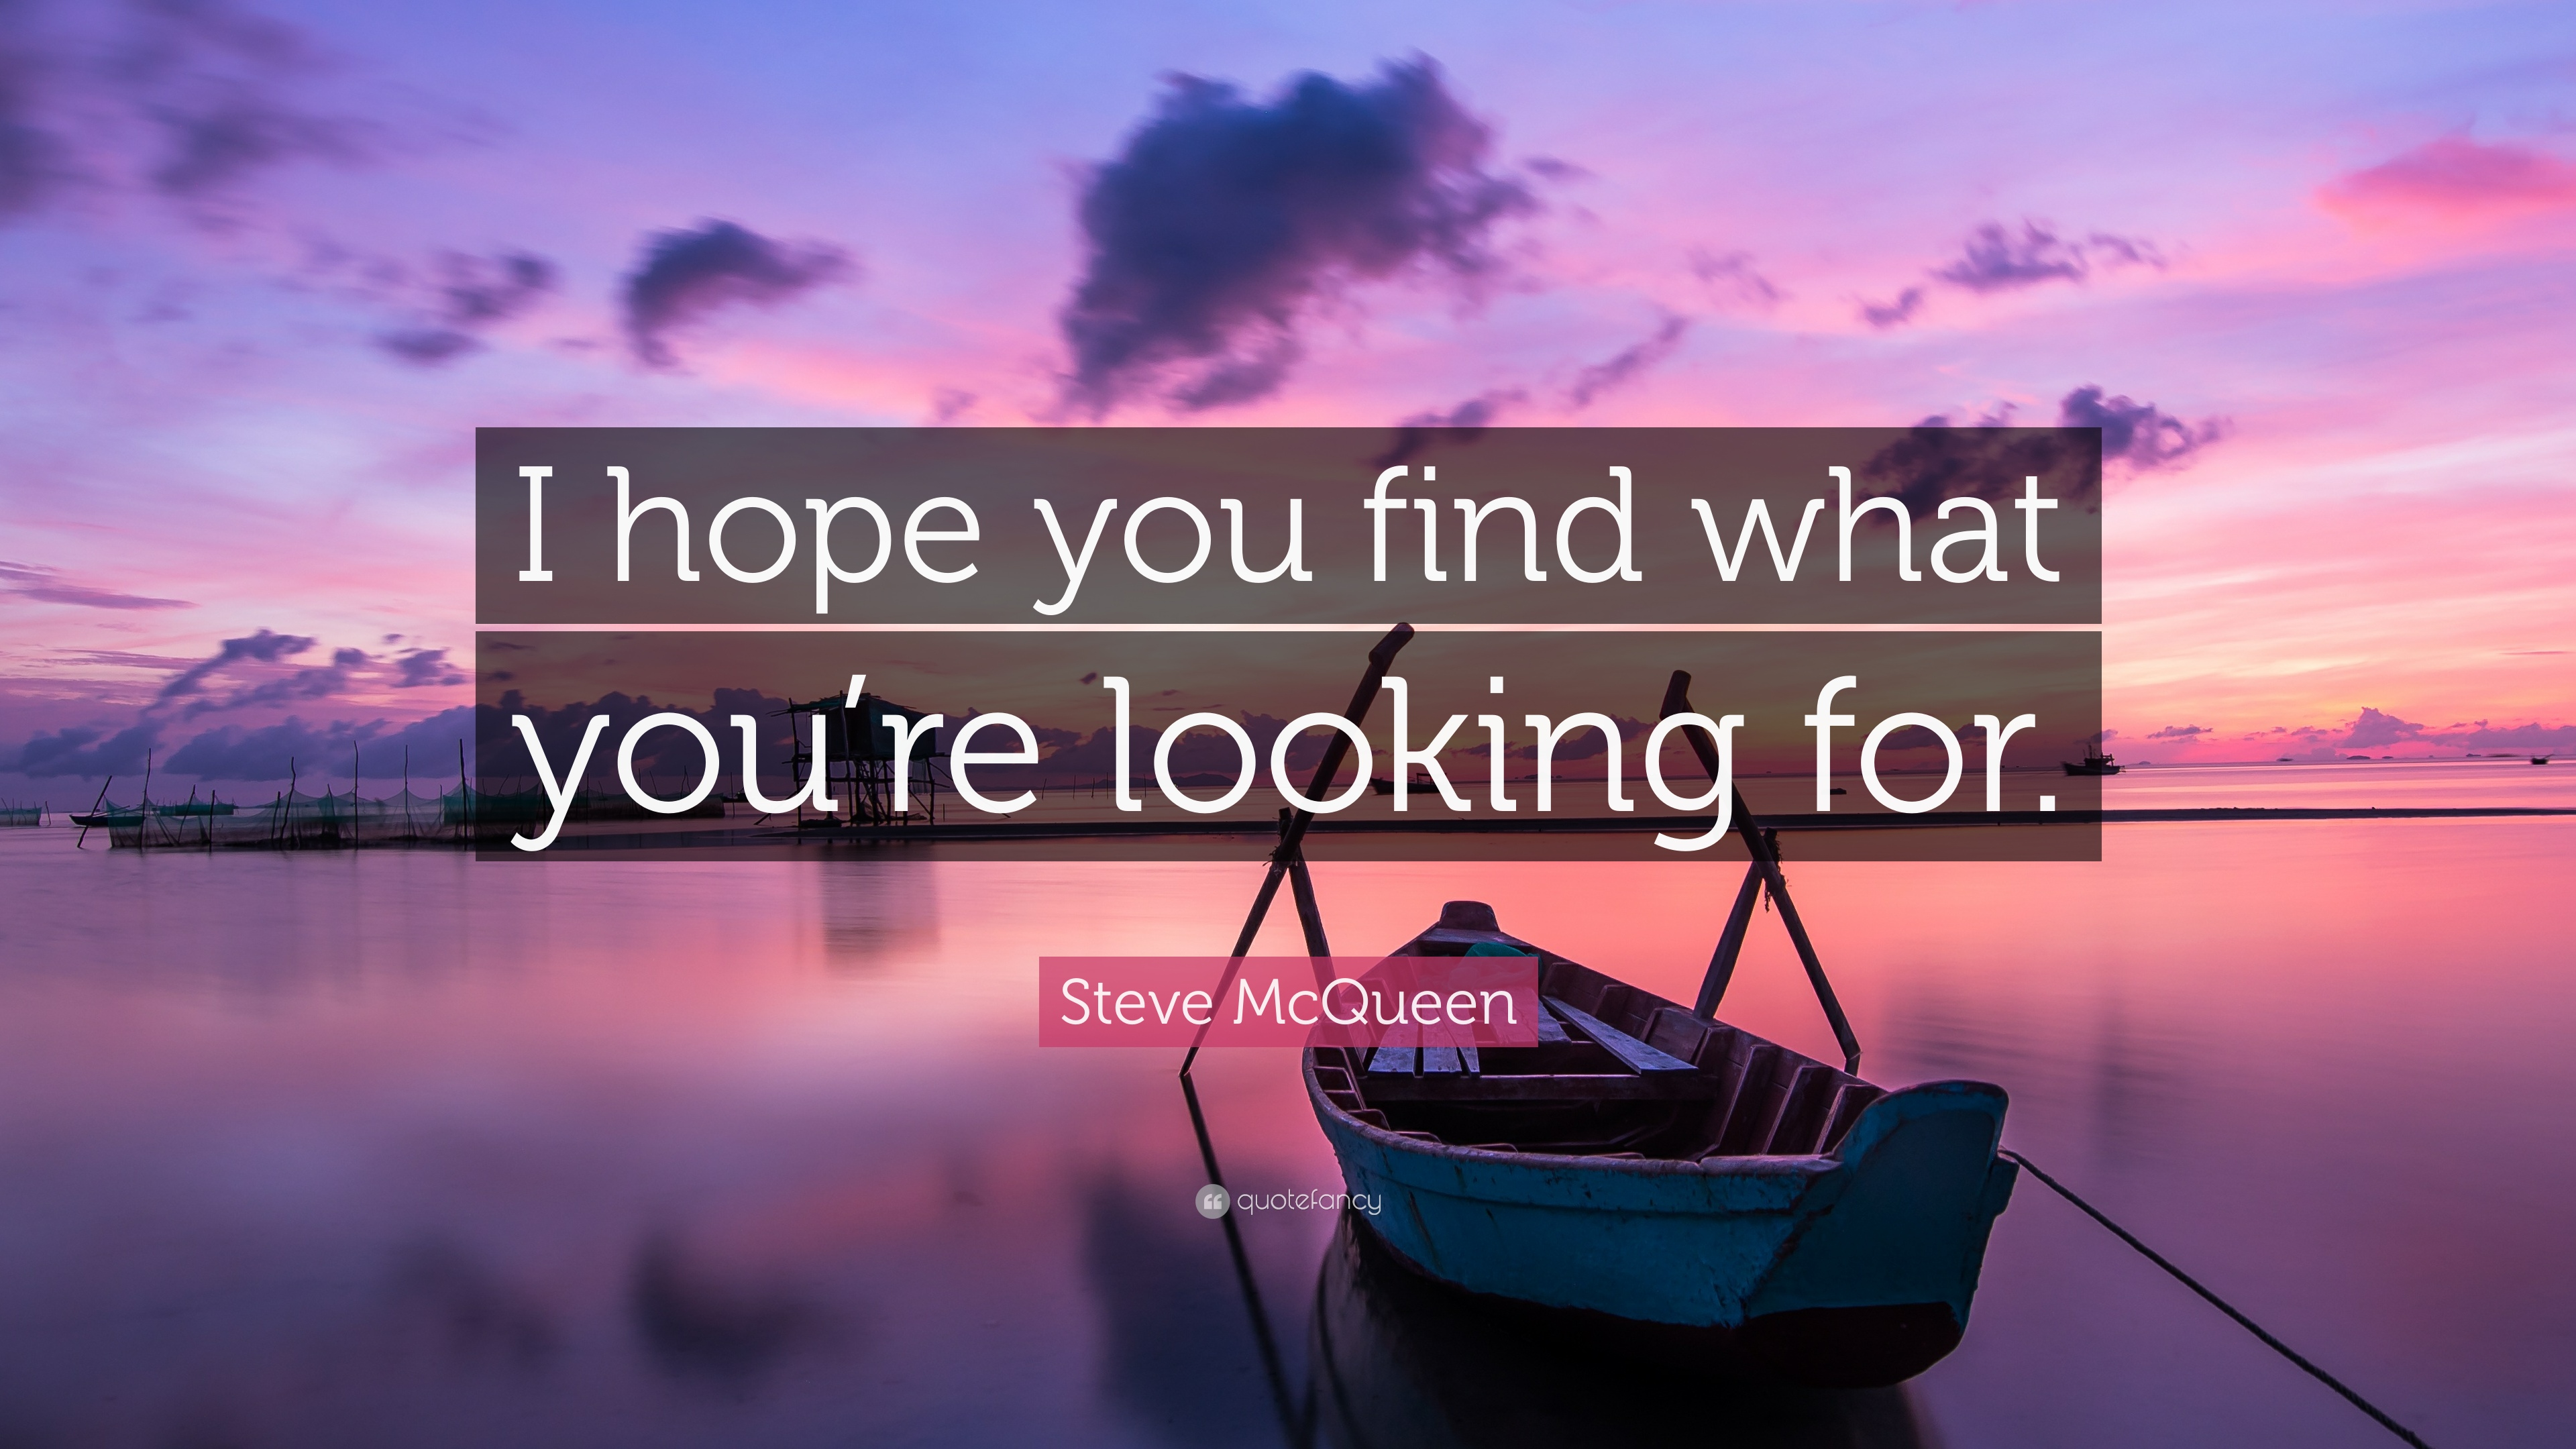 Steve McQueen Quote: I hope you find what youre looking